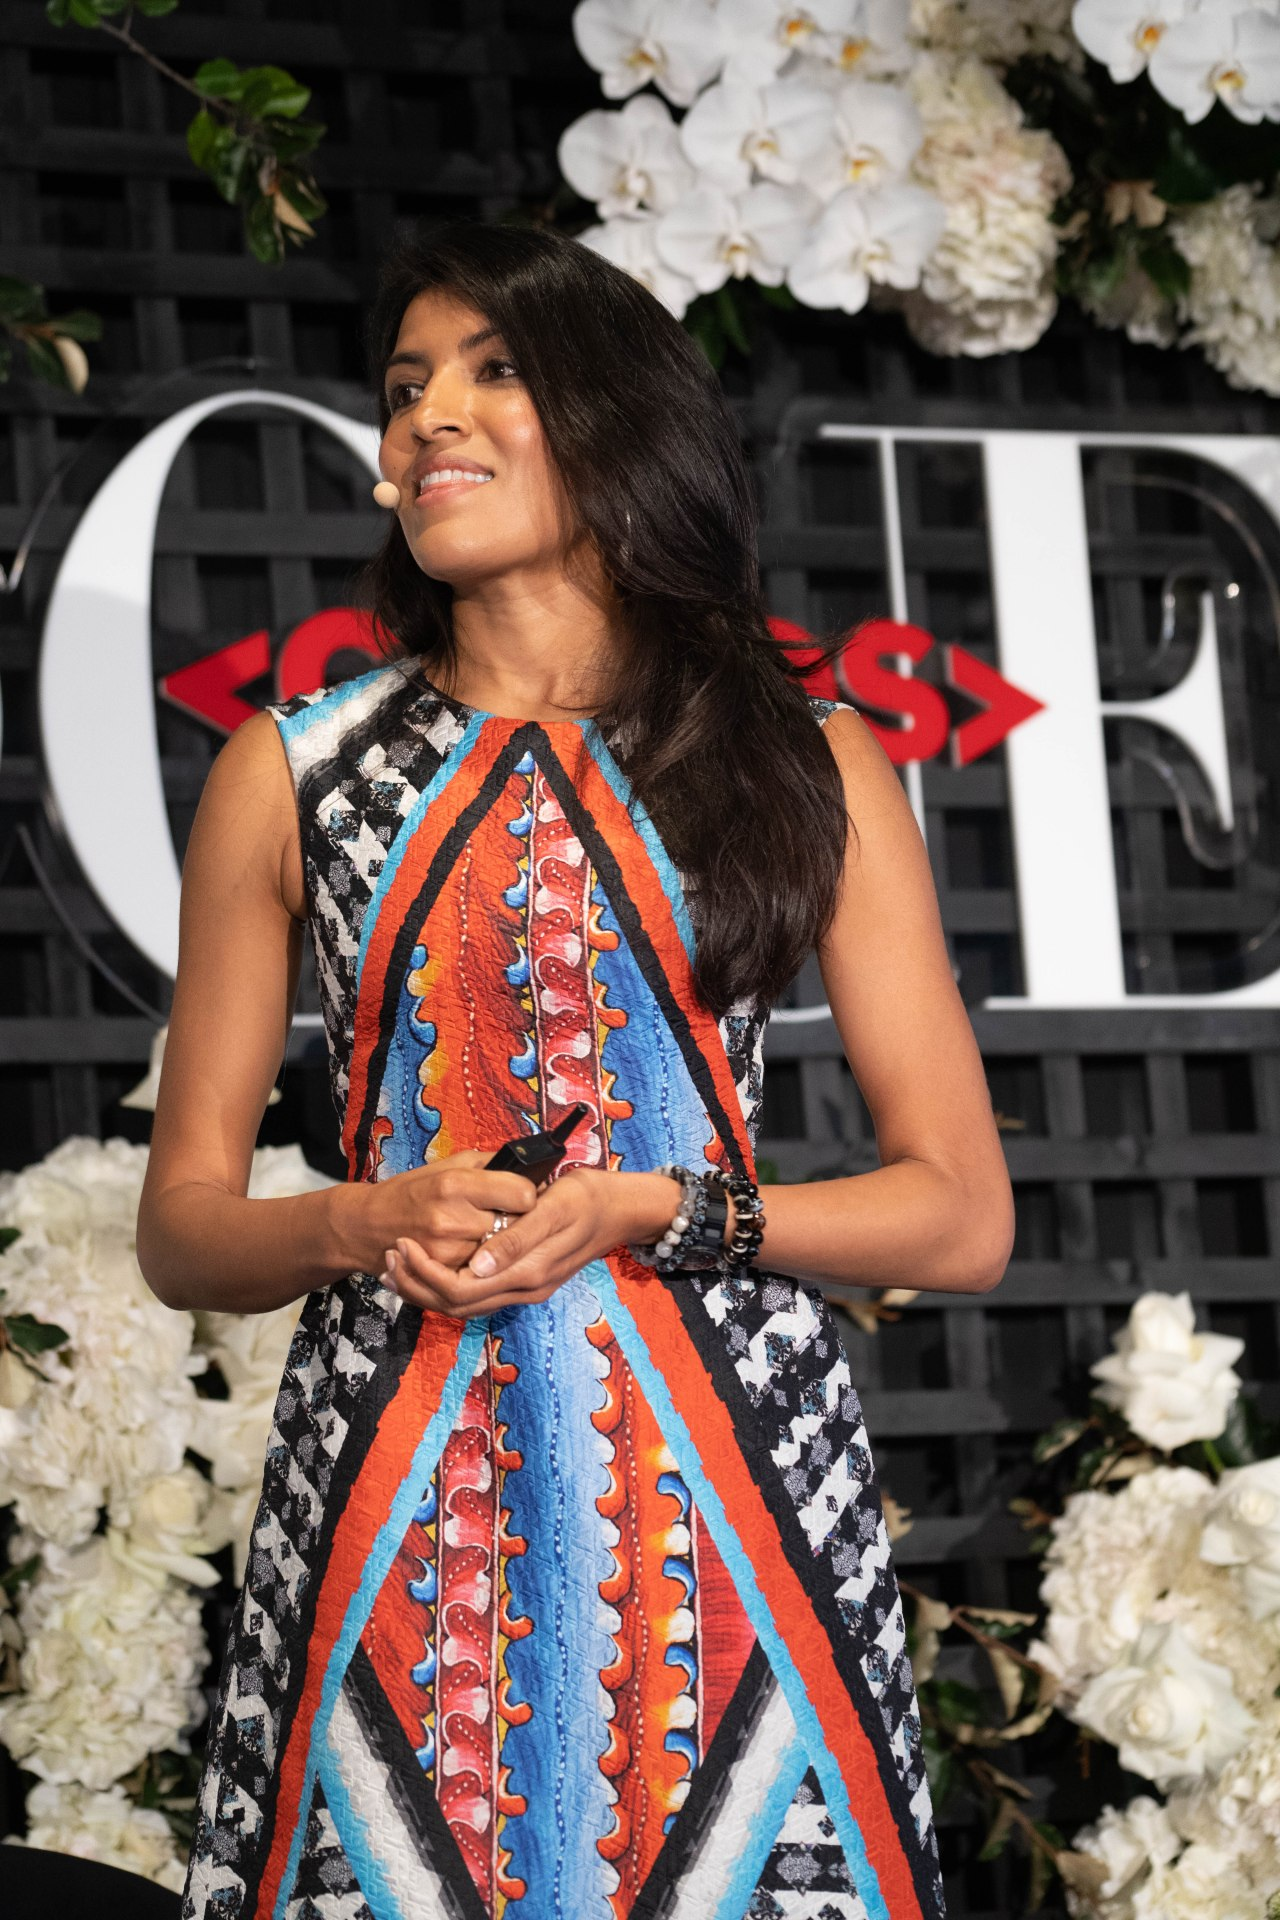 Social entrepreneur Leila Janah on giving work and creating opportunities